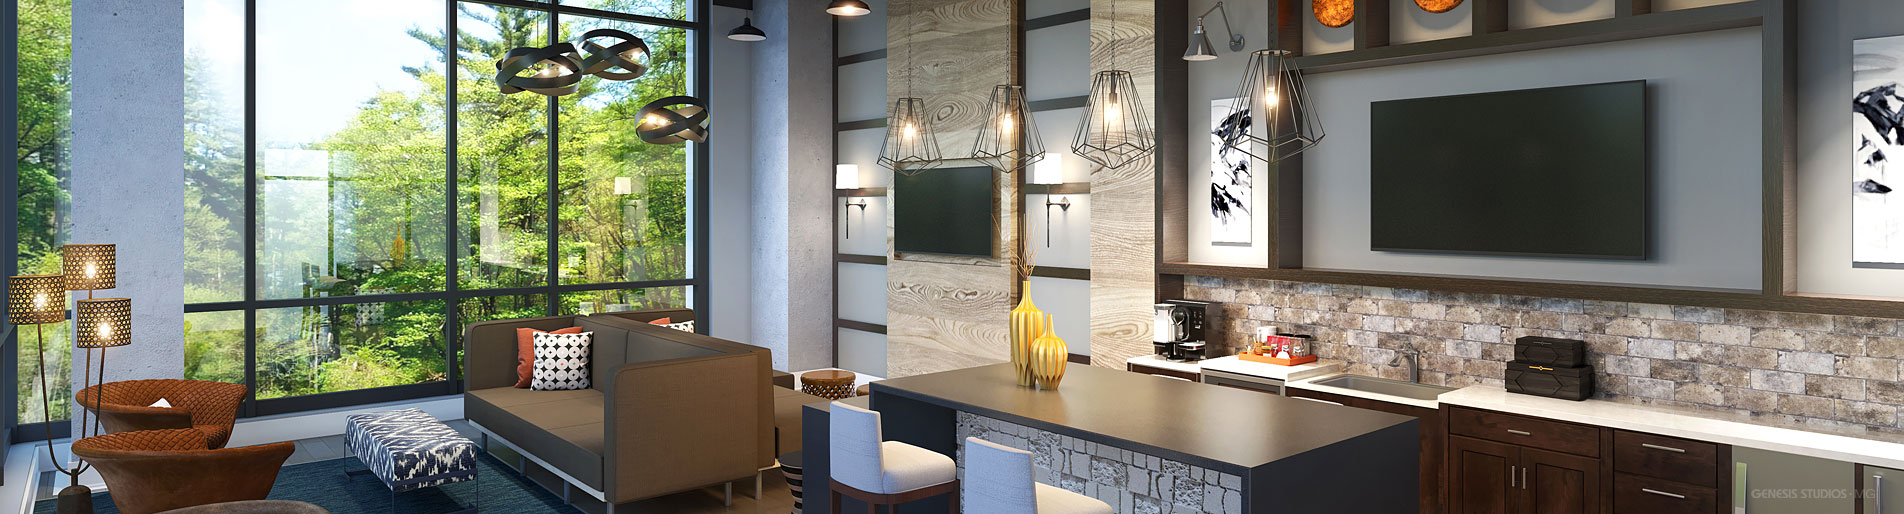 616160 Digital Photorealistic Architectural Renderings of Durham Exchange Clubroom for RAM Realty Services